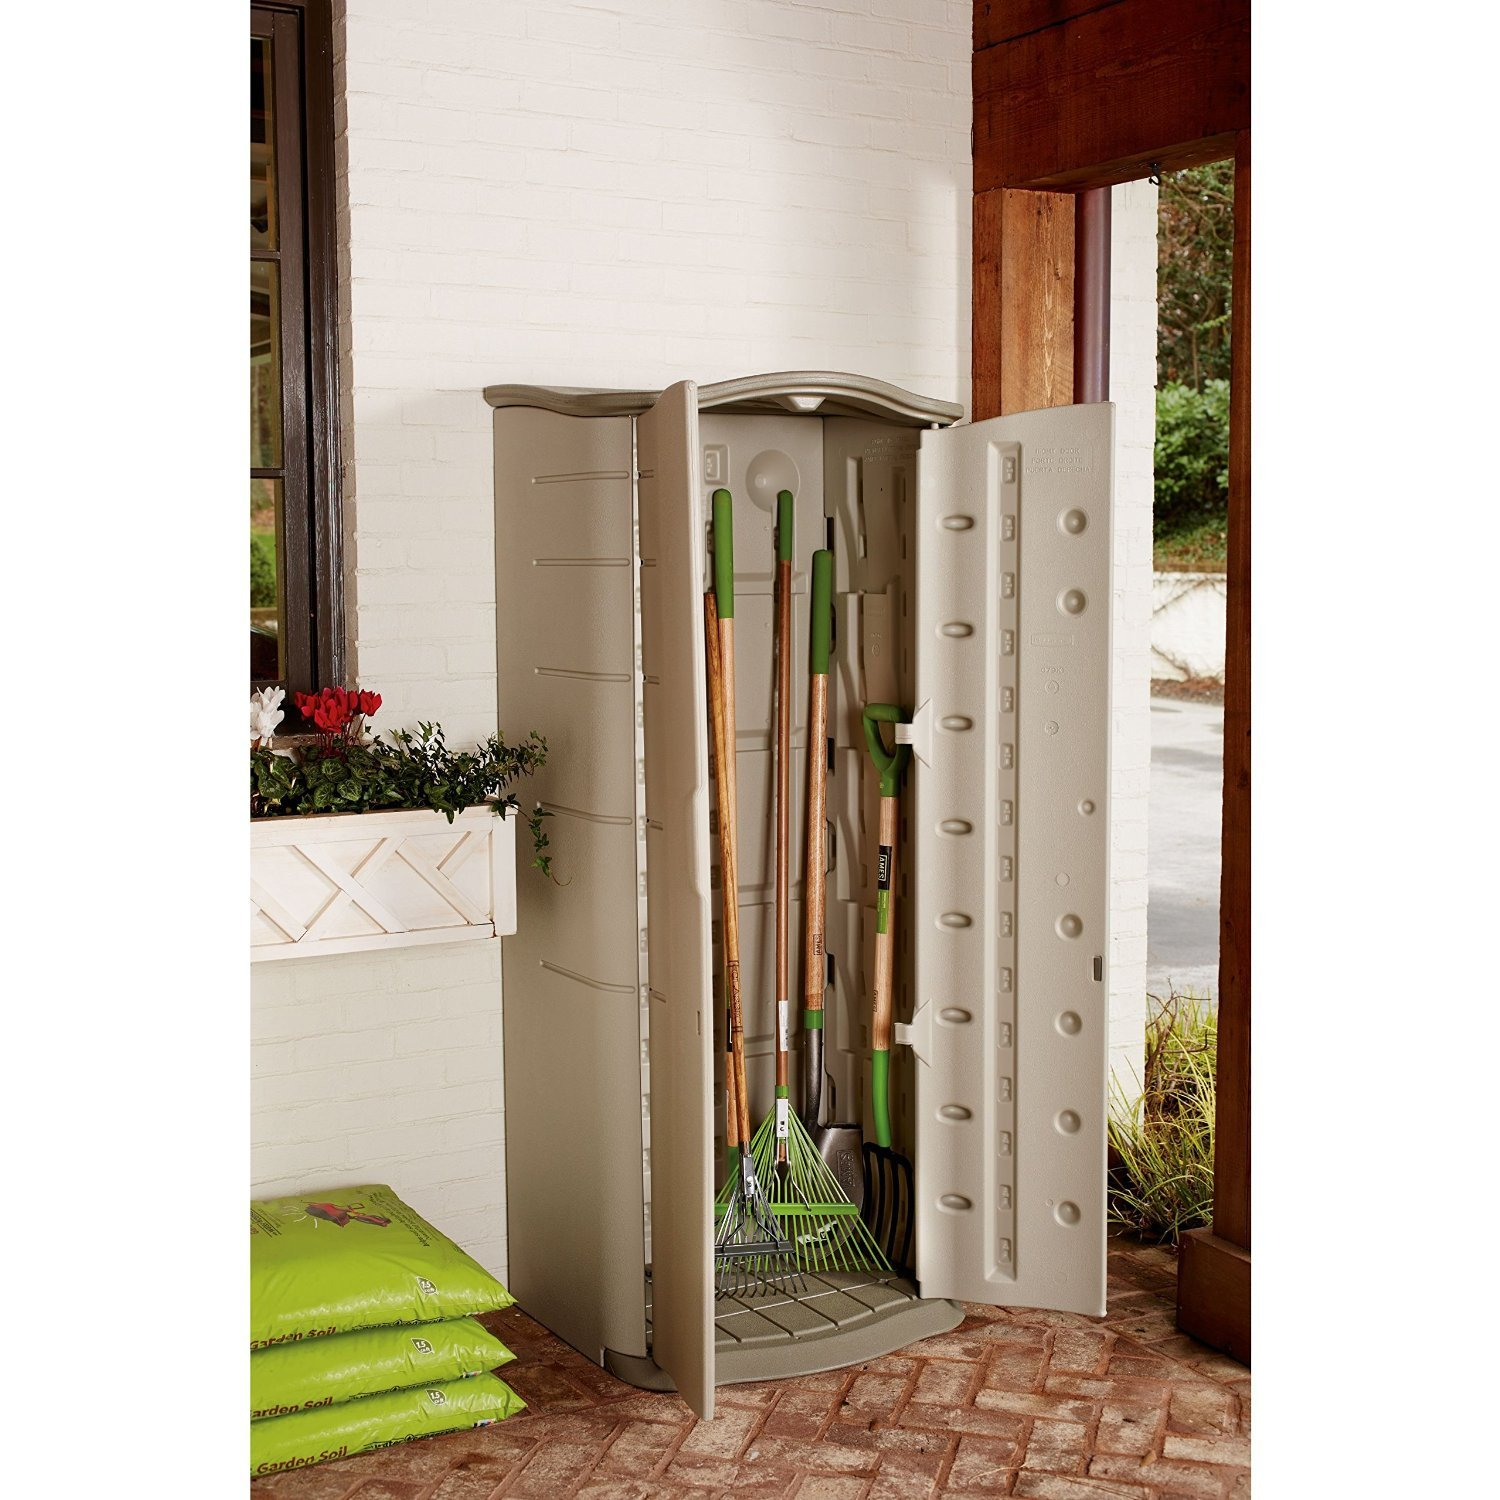 Amazon.com  Rubbermaid Outdoor Vertical Storage Shed Plastic 17 cu. ft 2 ft. x 2 ft Olive/Sandstone (FG374901OLVSS)  Storage Cabinet  Garden u0026 ...  sc 1 st  Amazon.com & Amazon.com : Rubbermaid Outdoor Vertical Storage Shed Plastic 17 ...